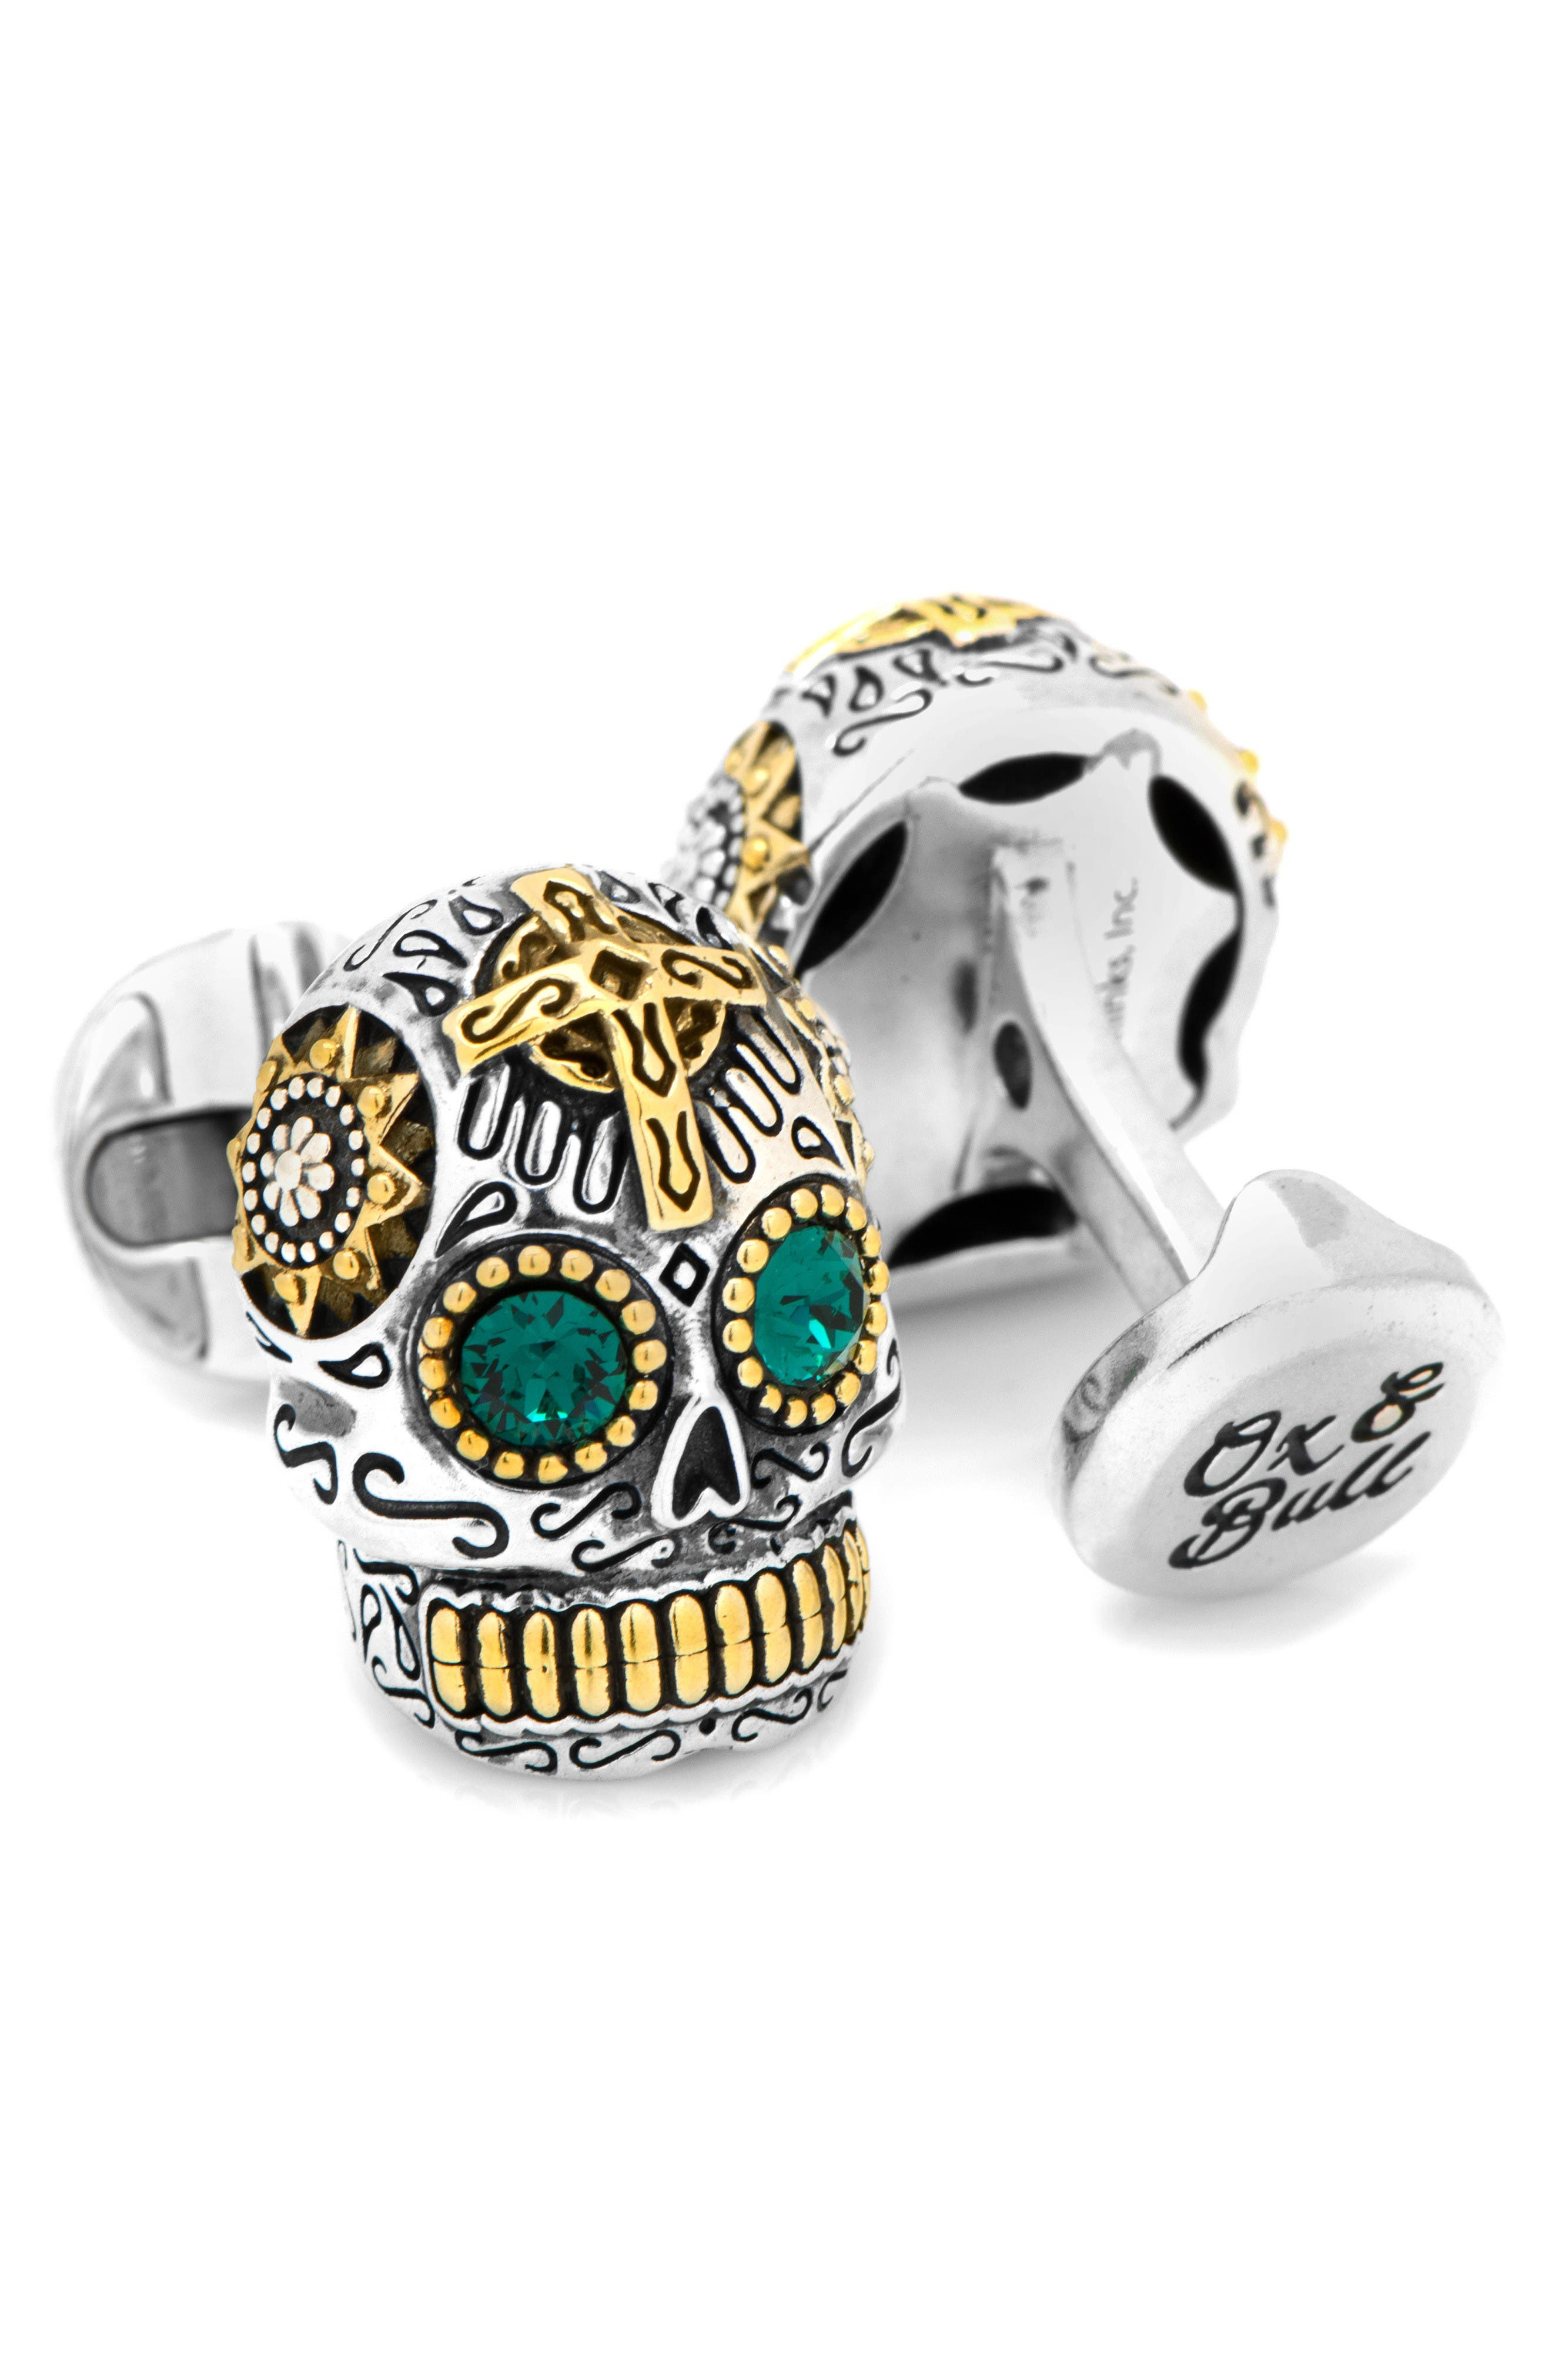 Skull Cuff Links,                             Alternate thumbnail 2, color,                             Silver